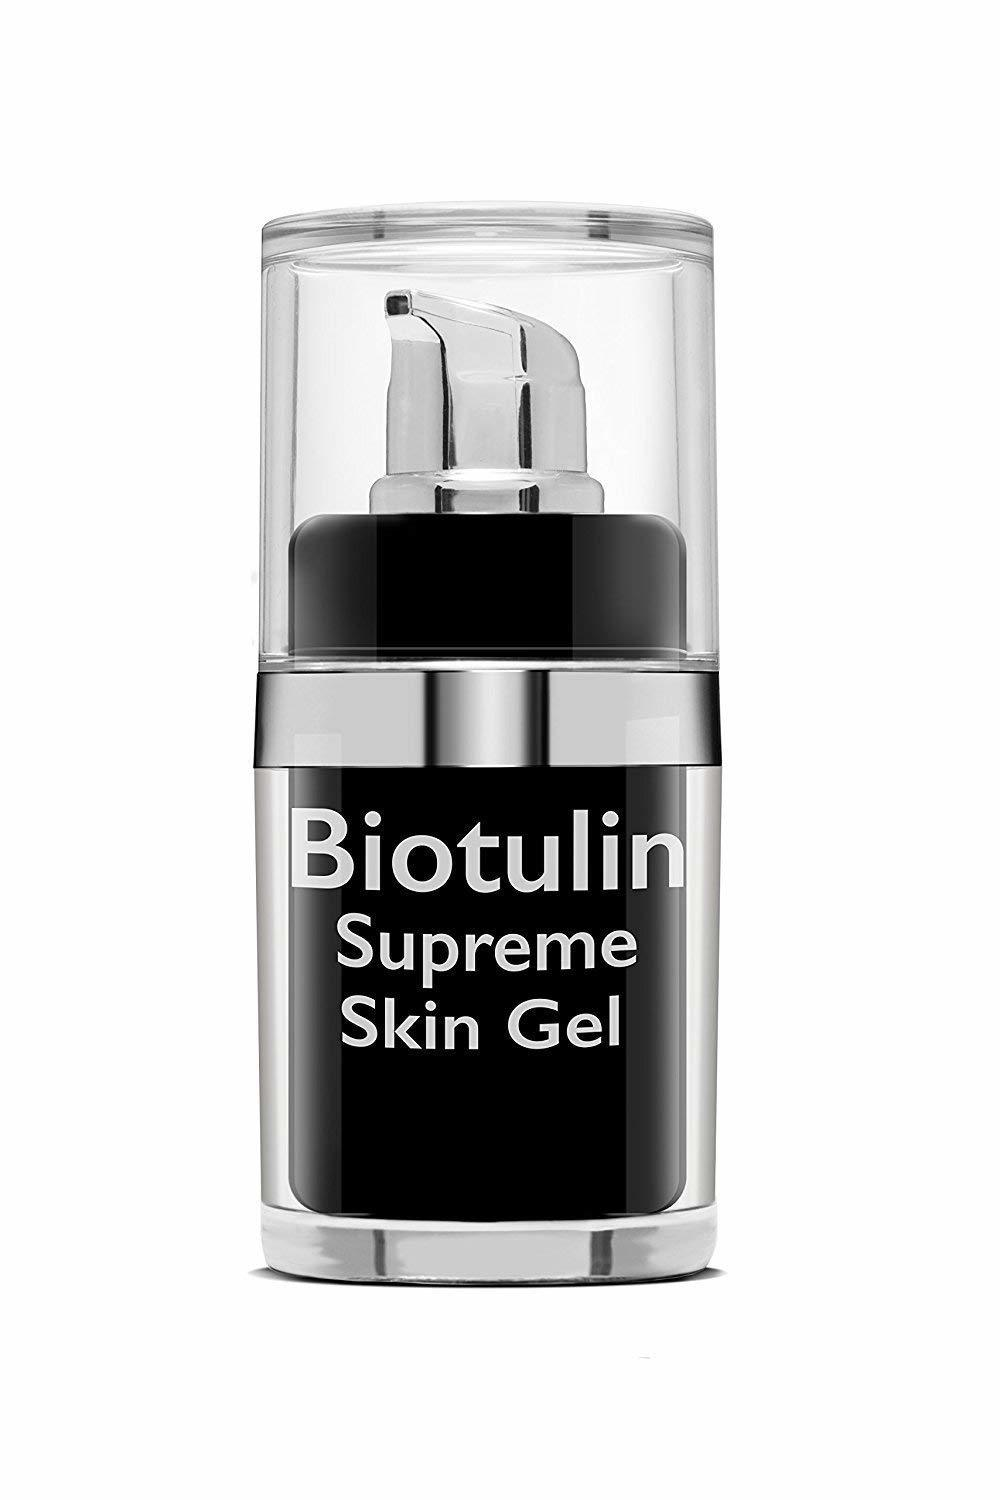 Biotulin Supreme Skin Gel.